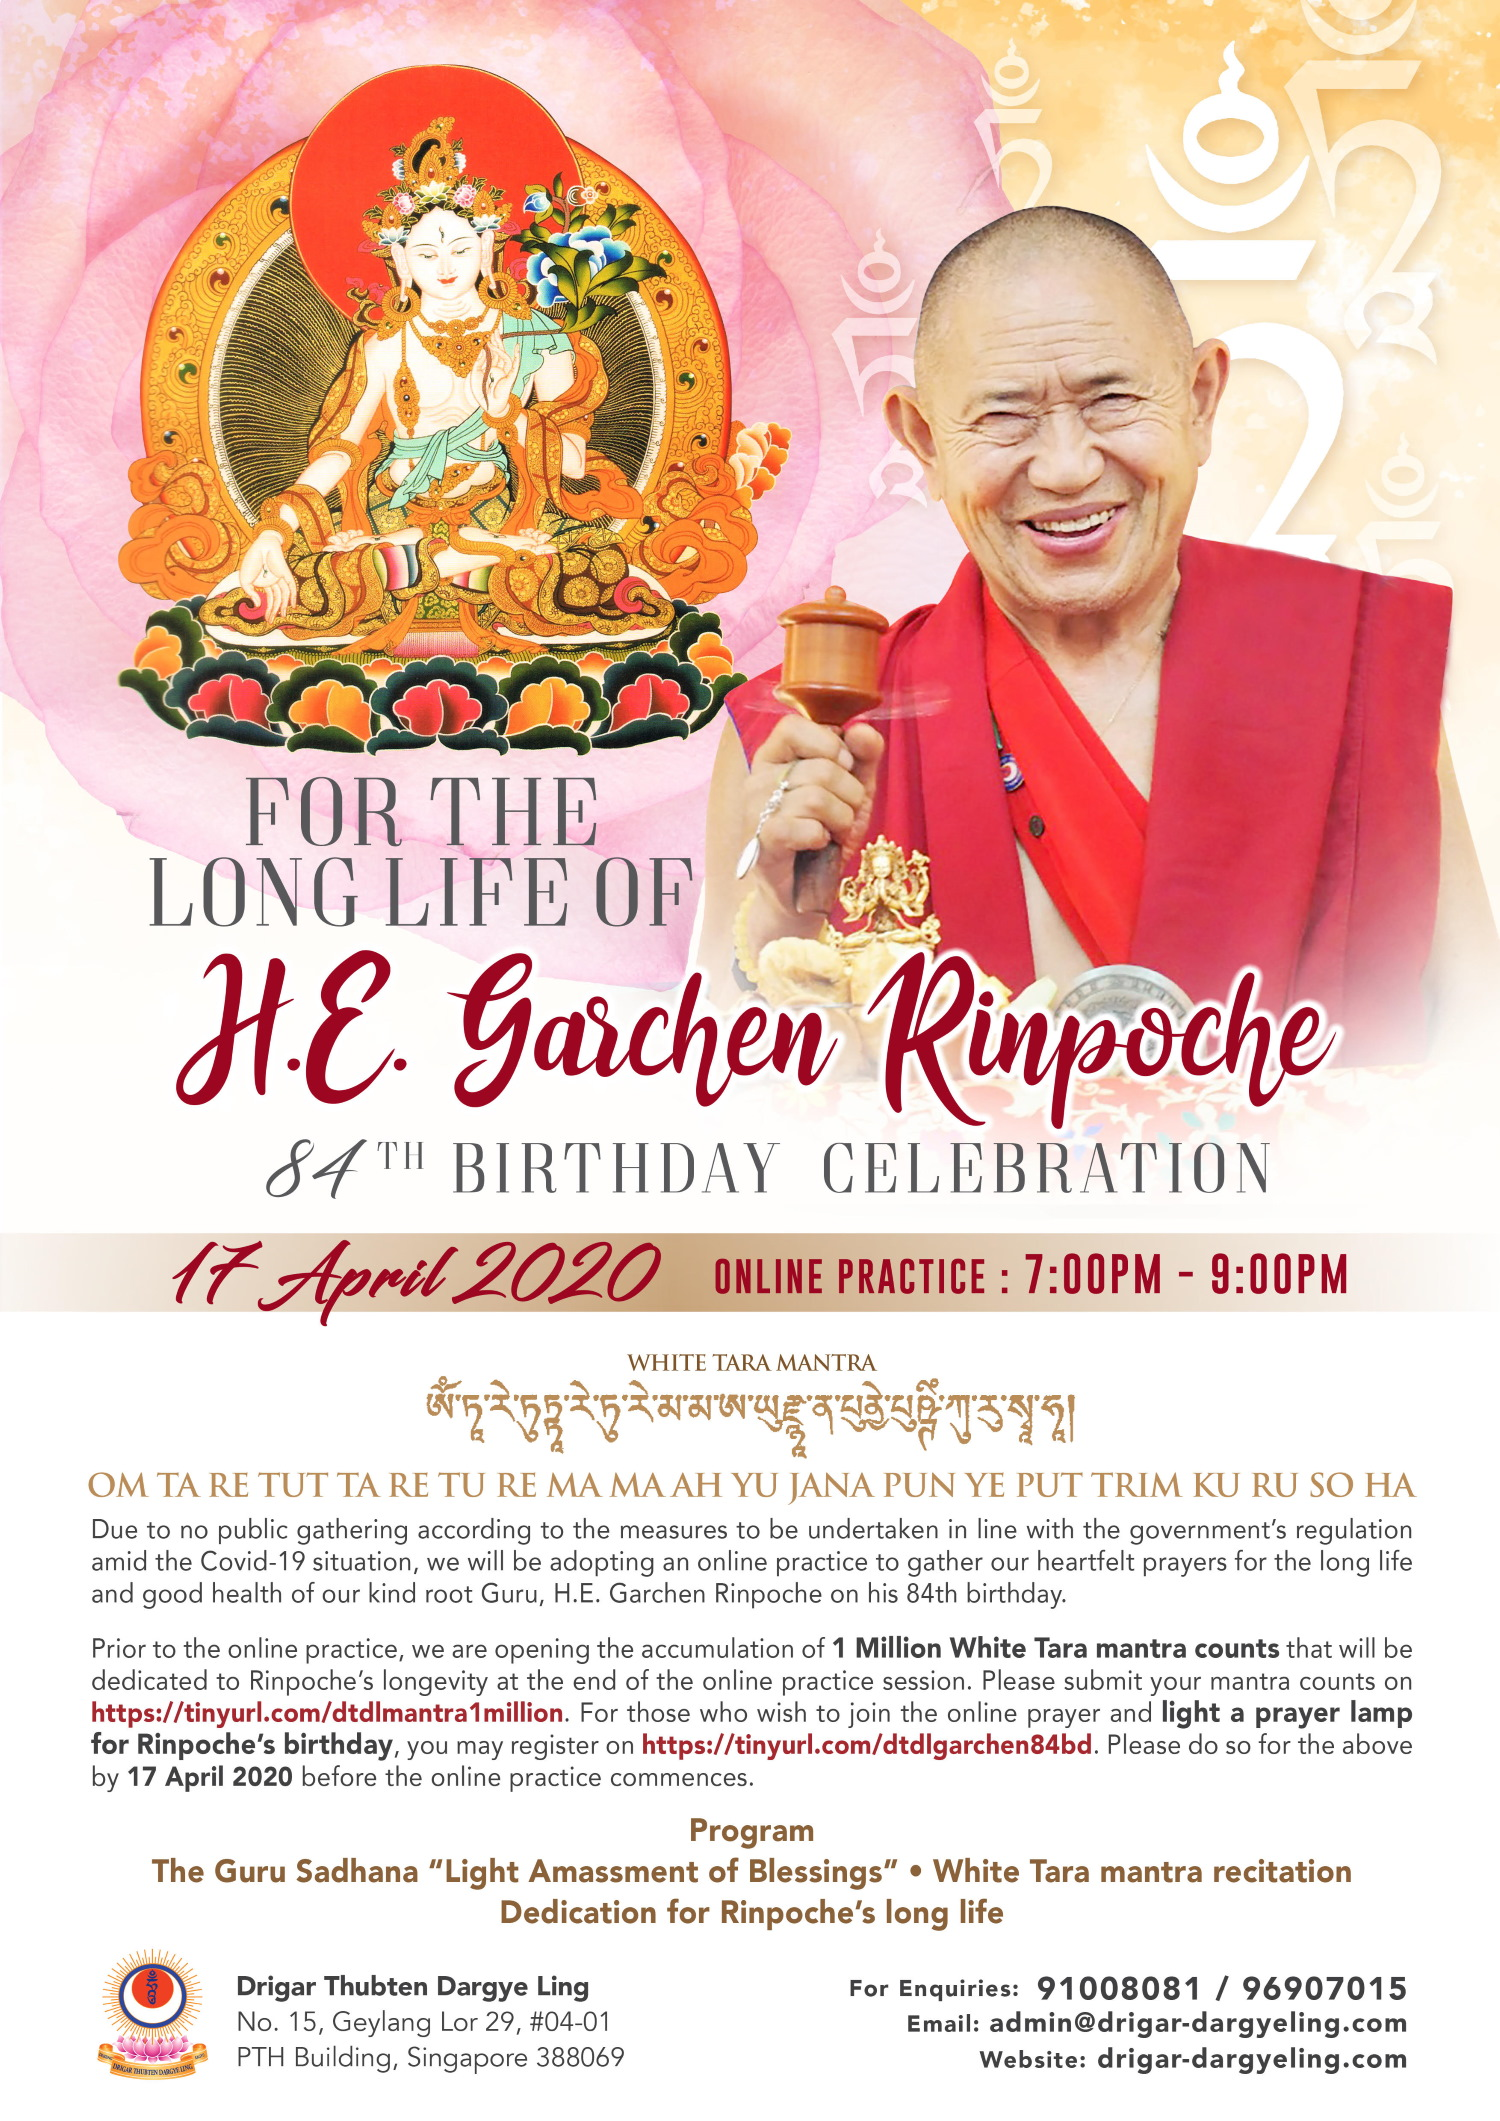 garchen-rinpoche-birthday-2020